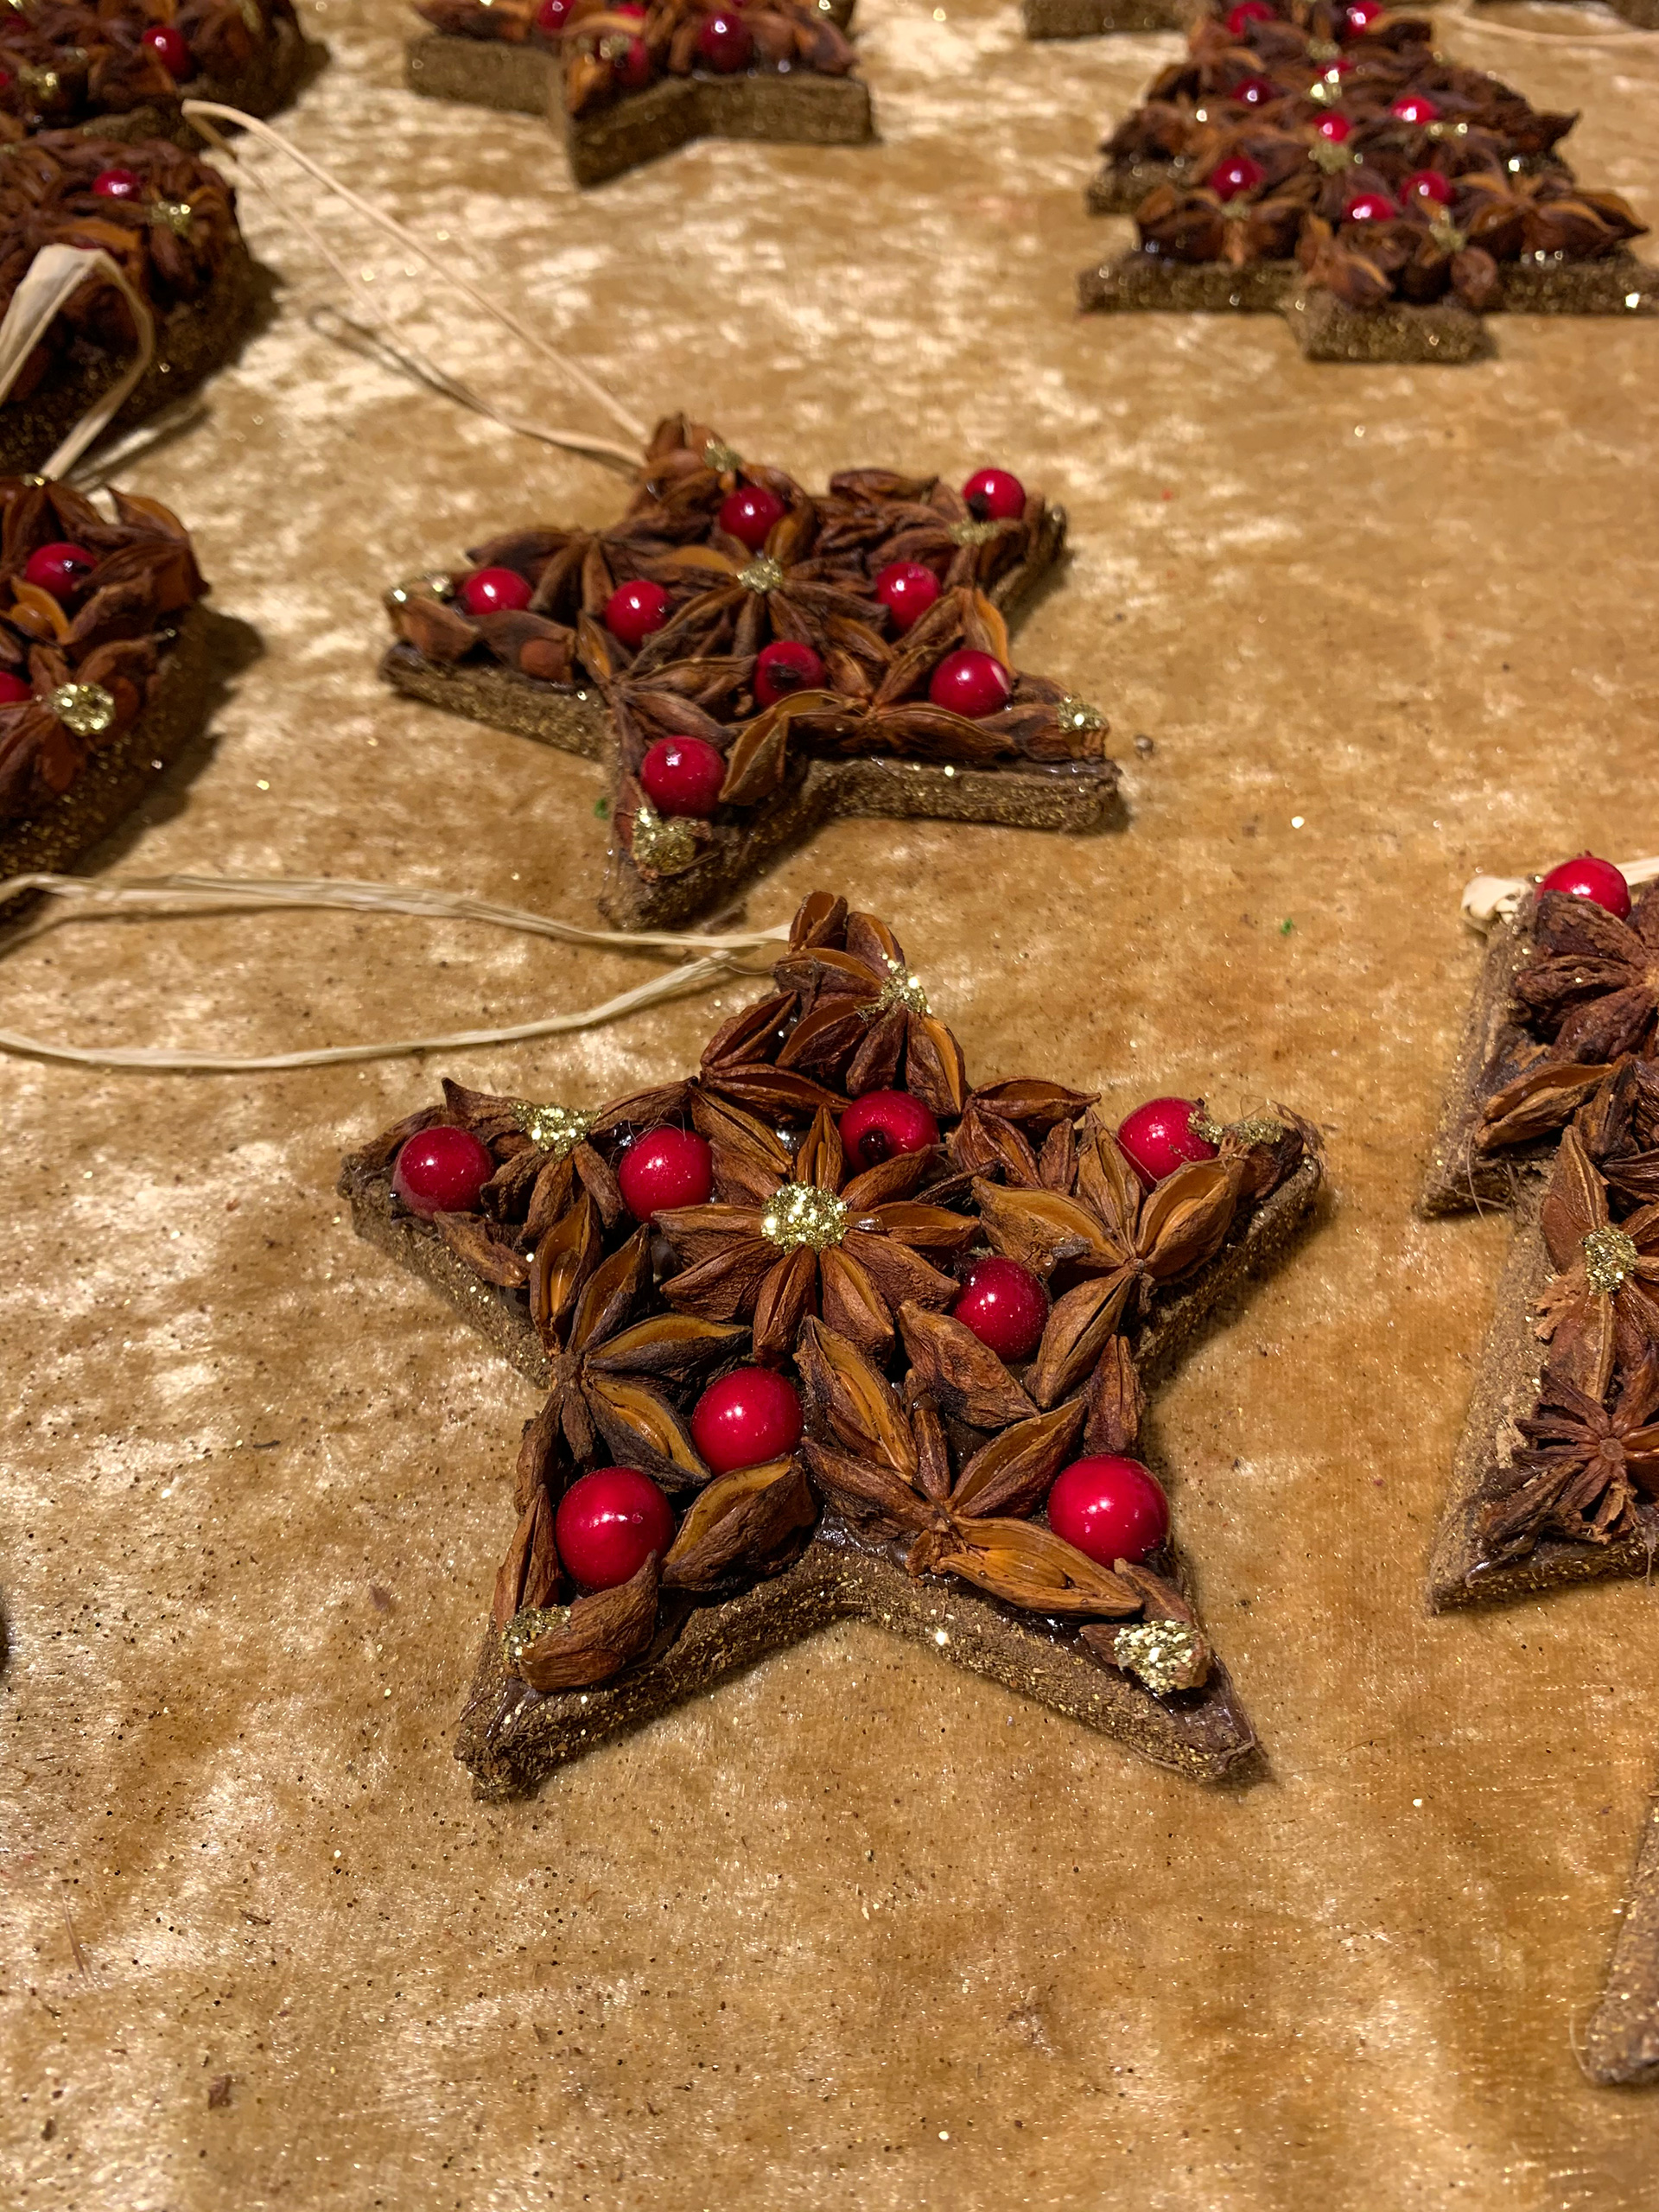 Ornaments made with Star Anise for Christmas decorations | Christmas Market | Heidelberg | STIRworld